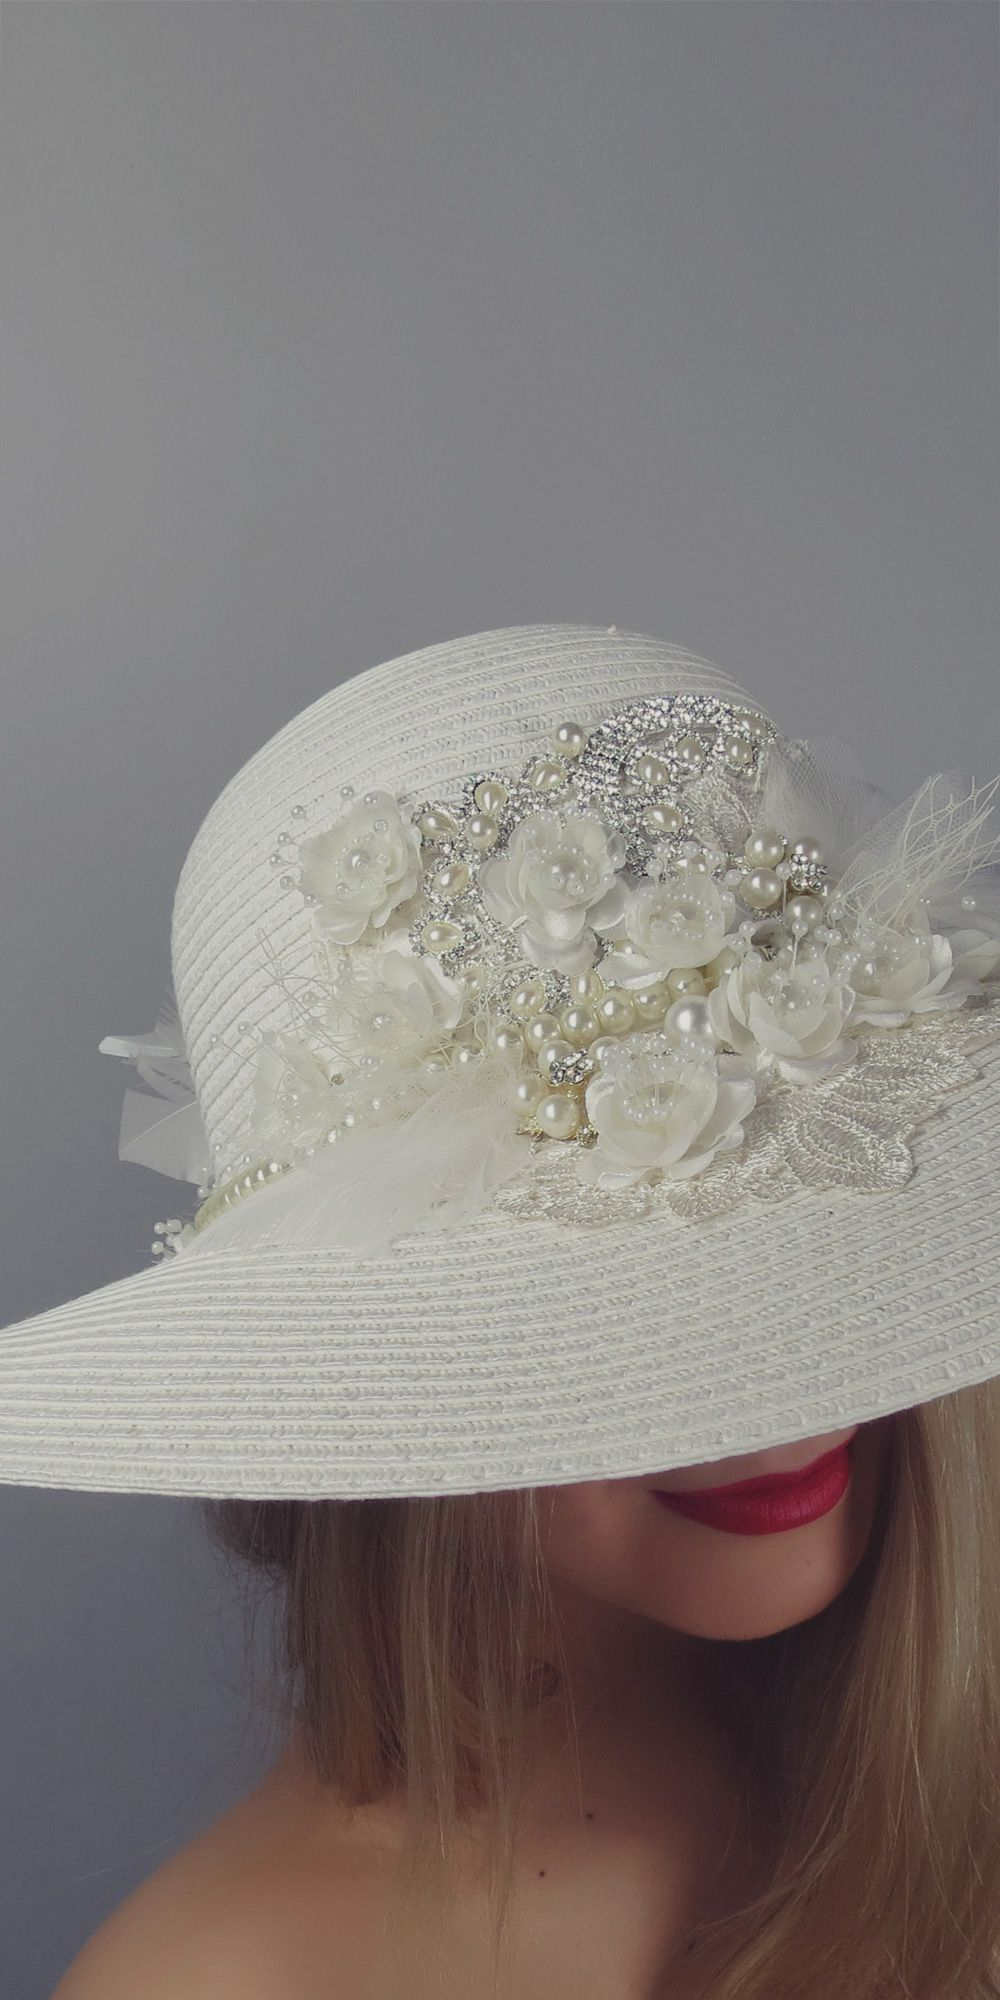 Bridal world accessory los angeles shop with large selection of bridal world accessory los angeles shop with large selection of bridal accessories lady hats junglespirit Image collections